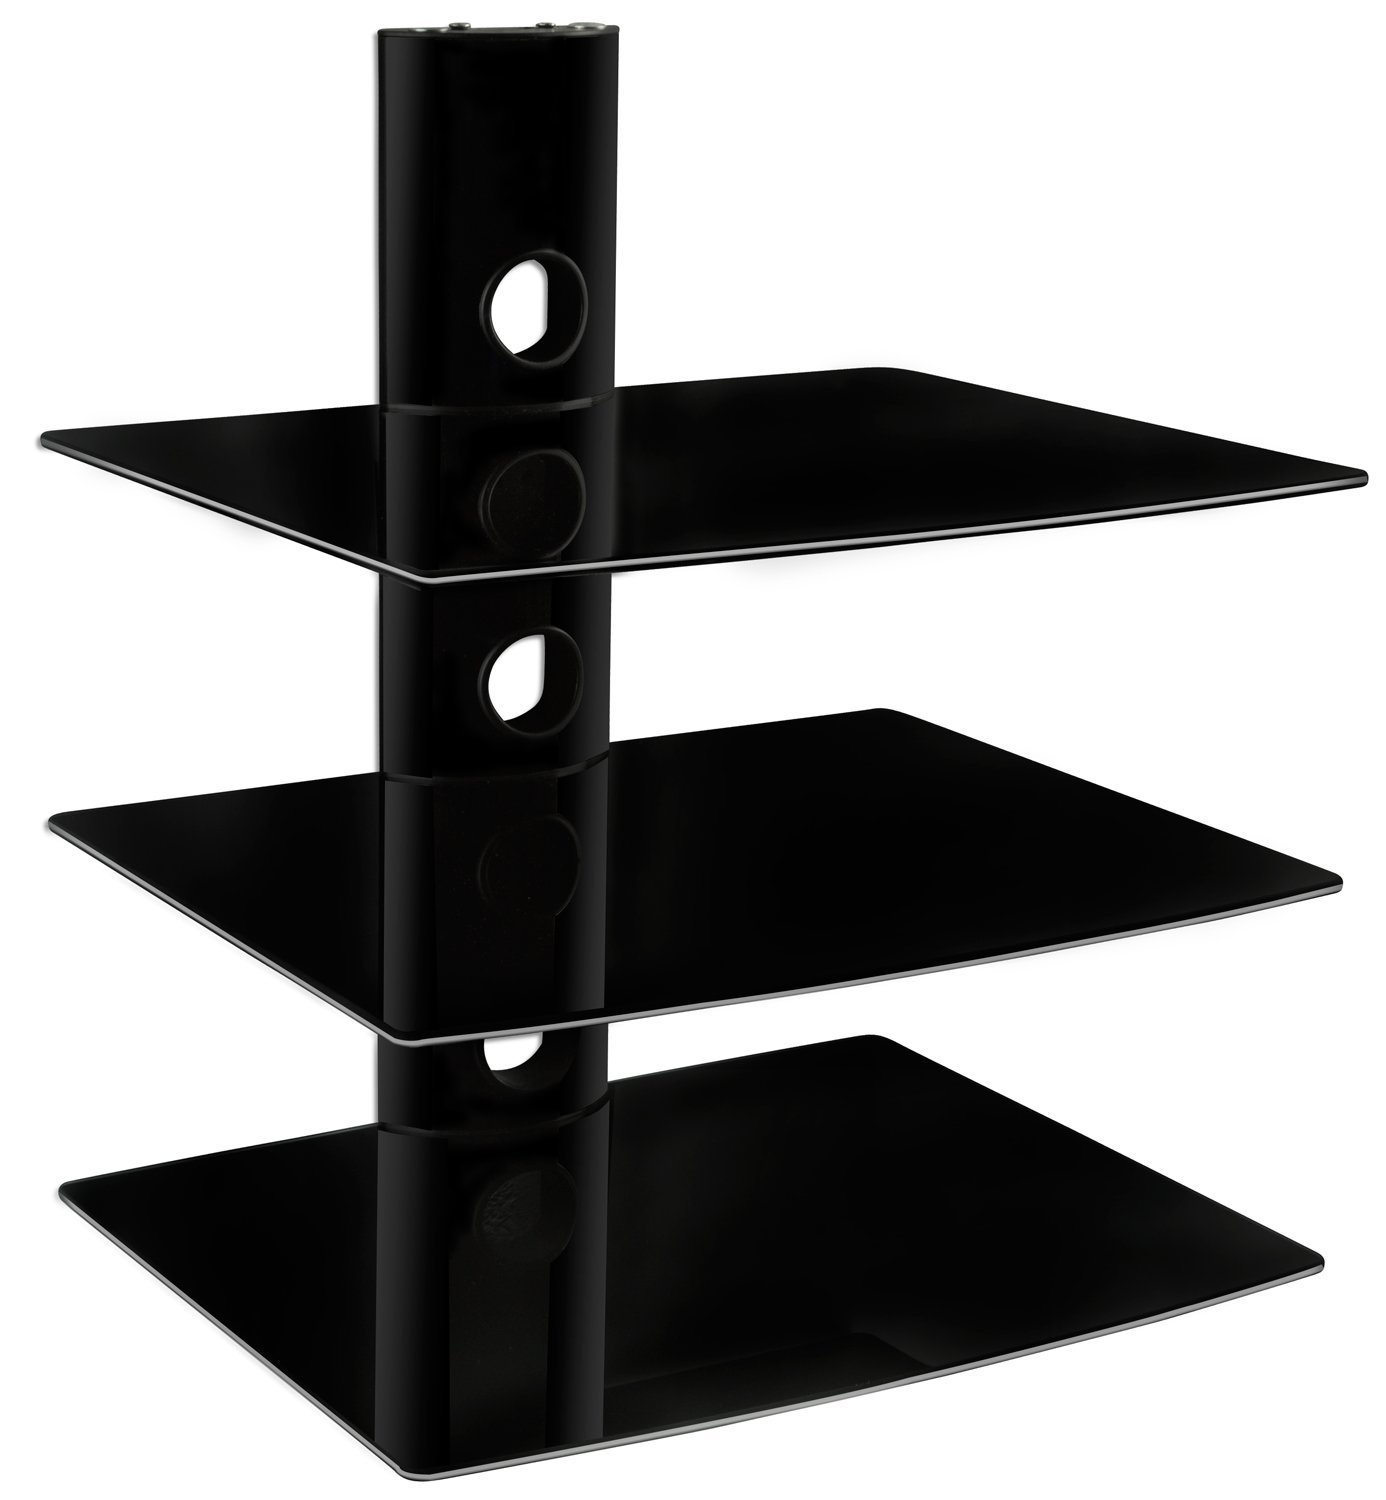 Amazon Mount It Mi 803 Floating Wall Mounted Shelf Bracket Pertaining To Floating Glass Shelf For Dvd Player (Image 1 of 15)